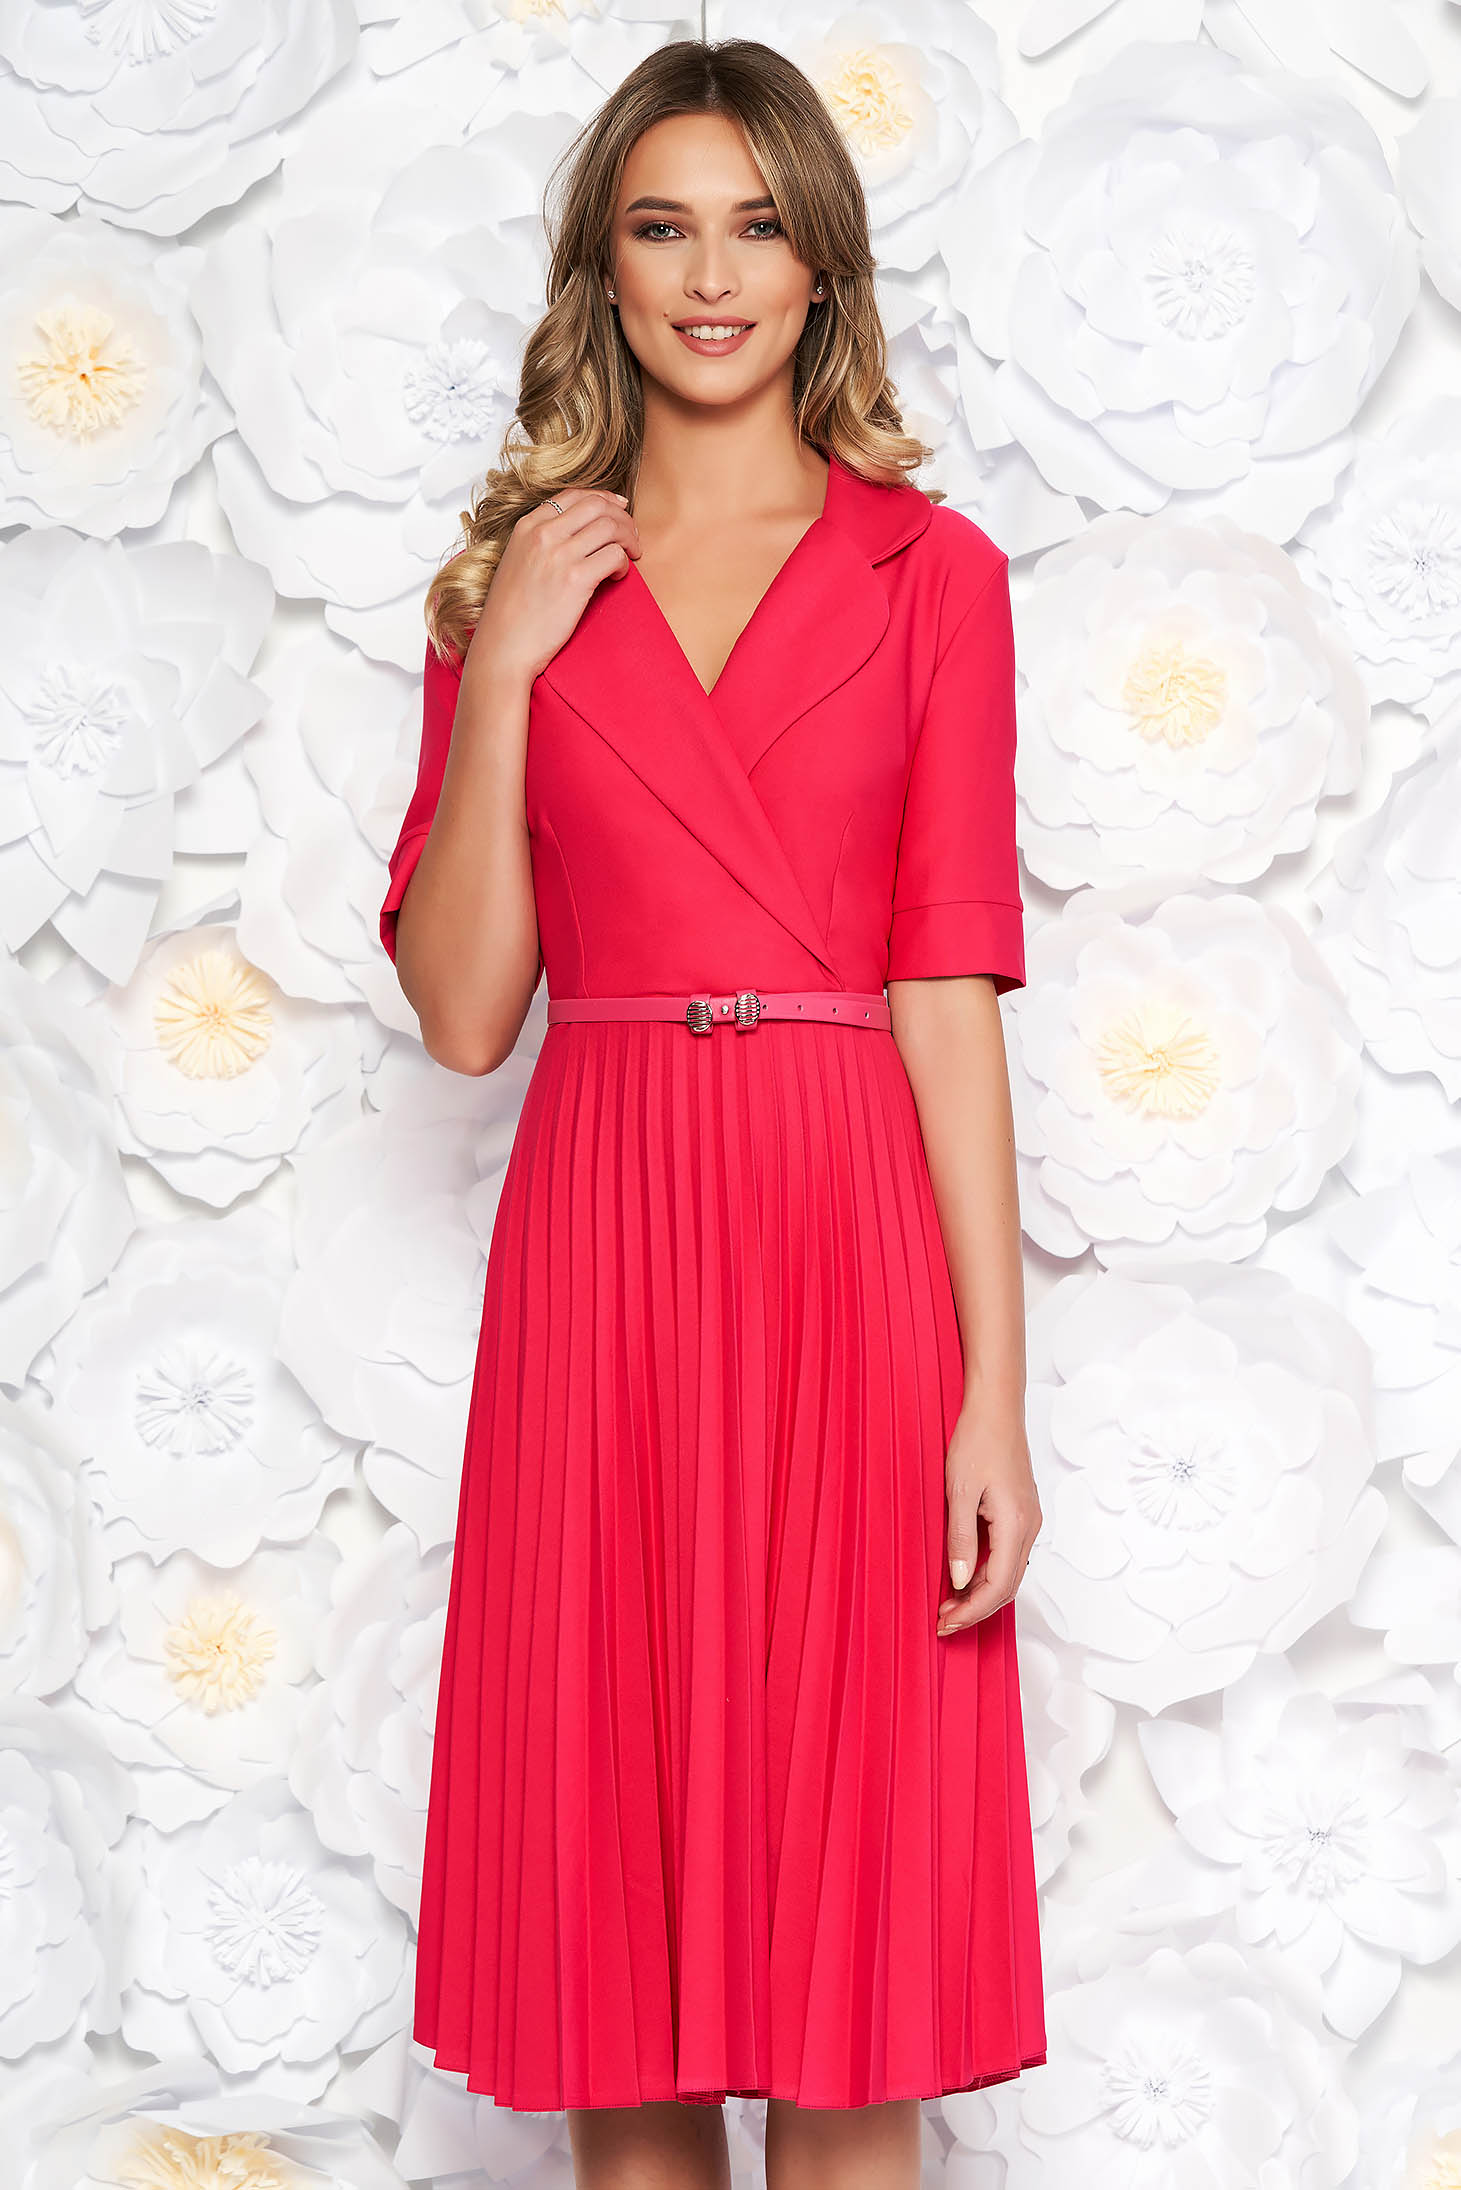 Pink daily elegant cloche dress with v-neckline accessorized with belt airy fabric